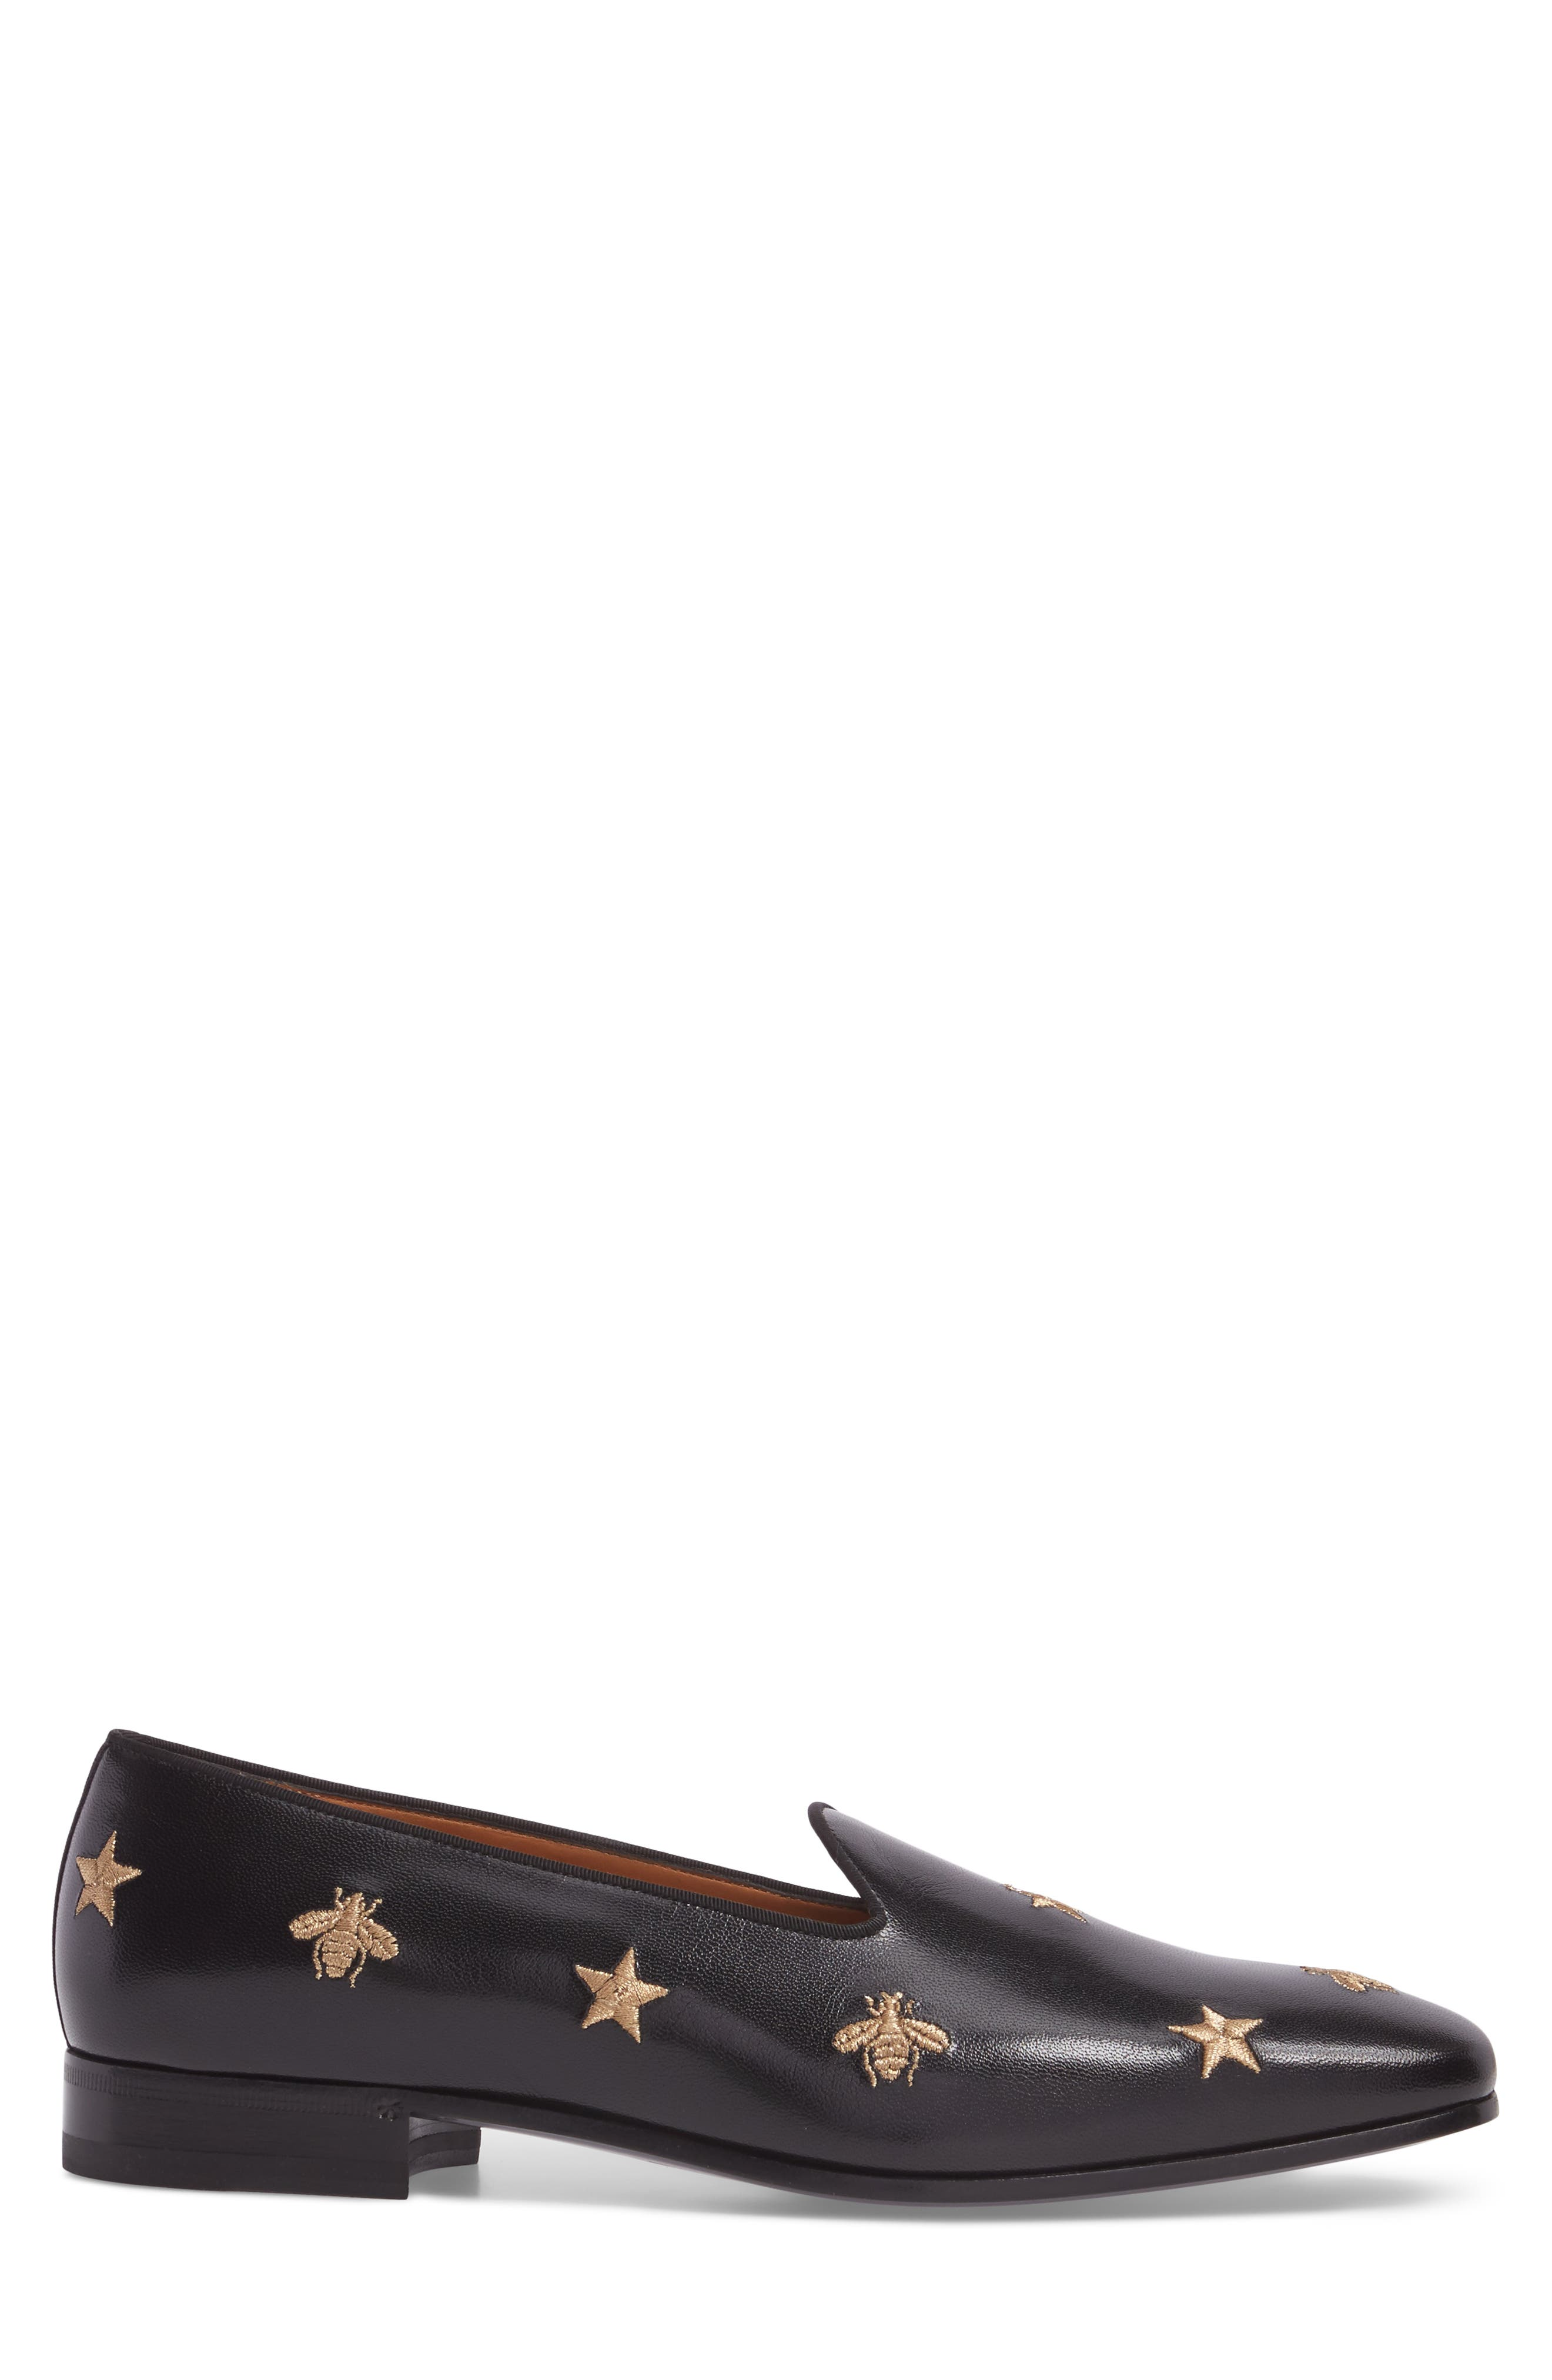 Embroidered Leather Loafer,                             Alternate thumbnail 3, color,